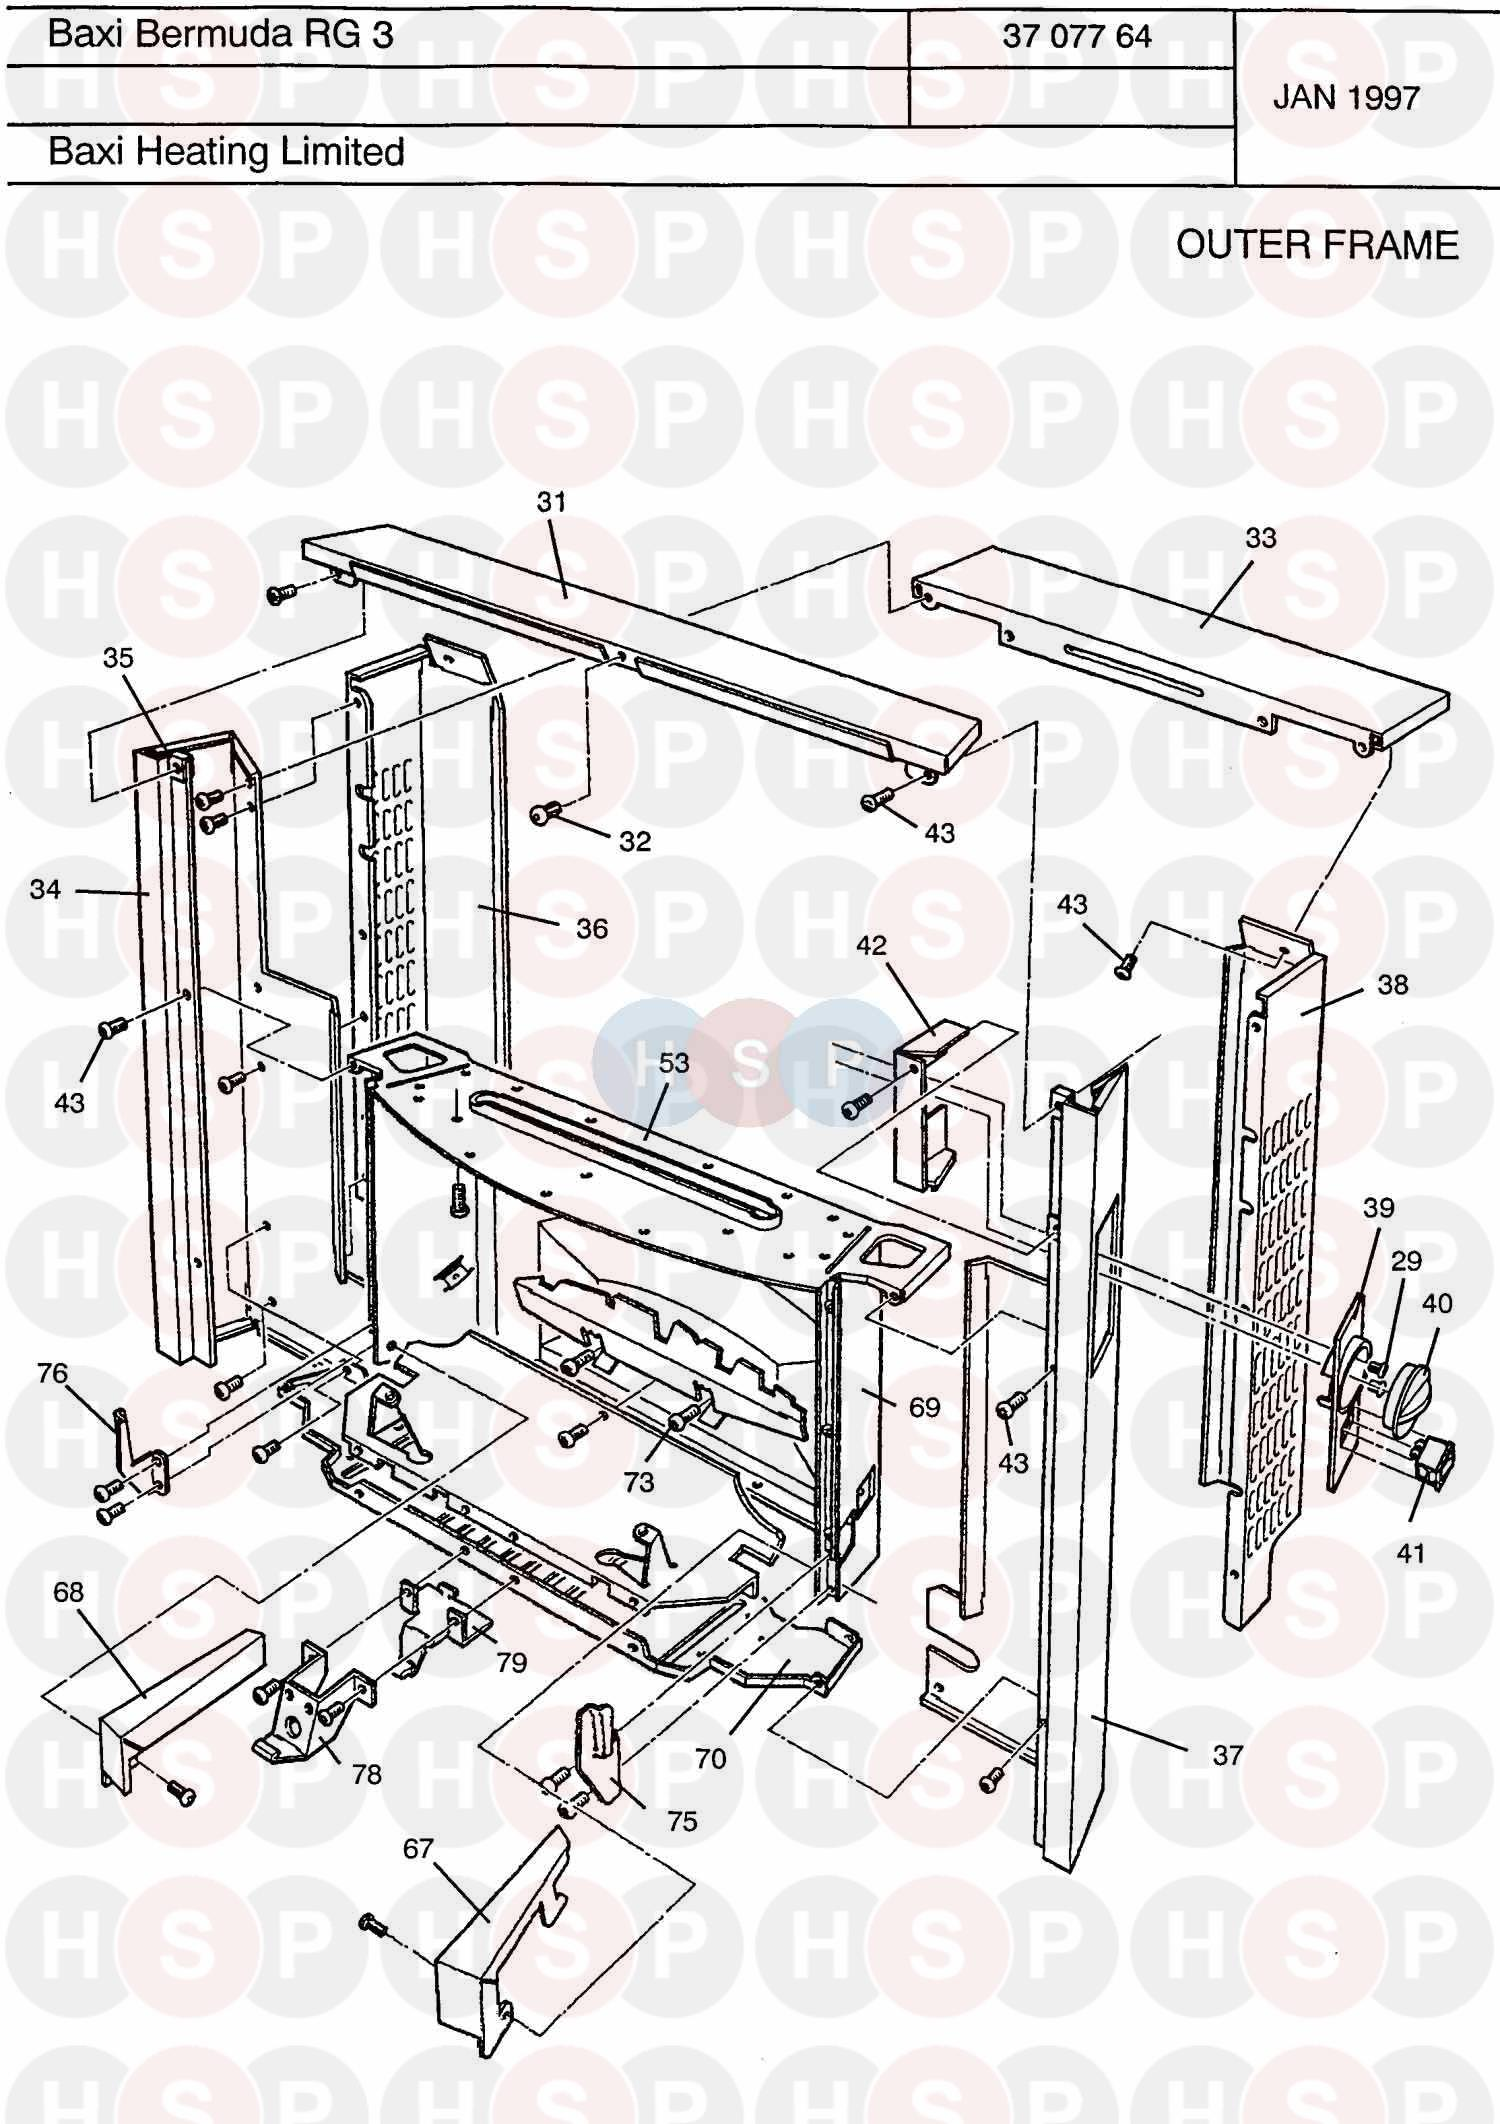 Outer Frame diagram for Baxi Bermuda RG3 Renewal NG